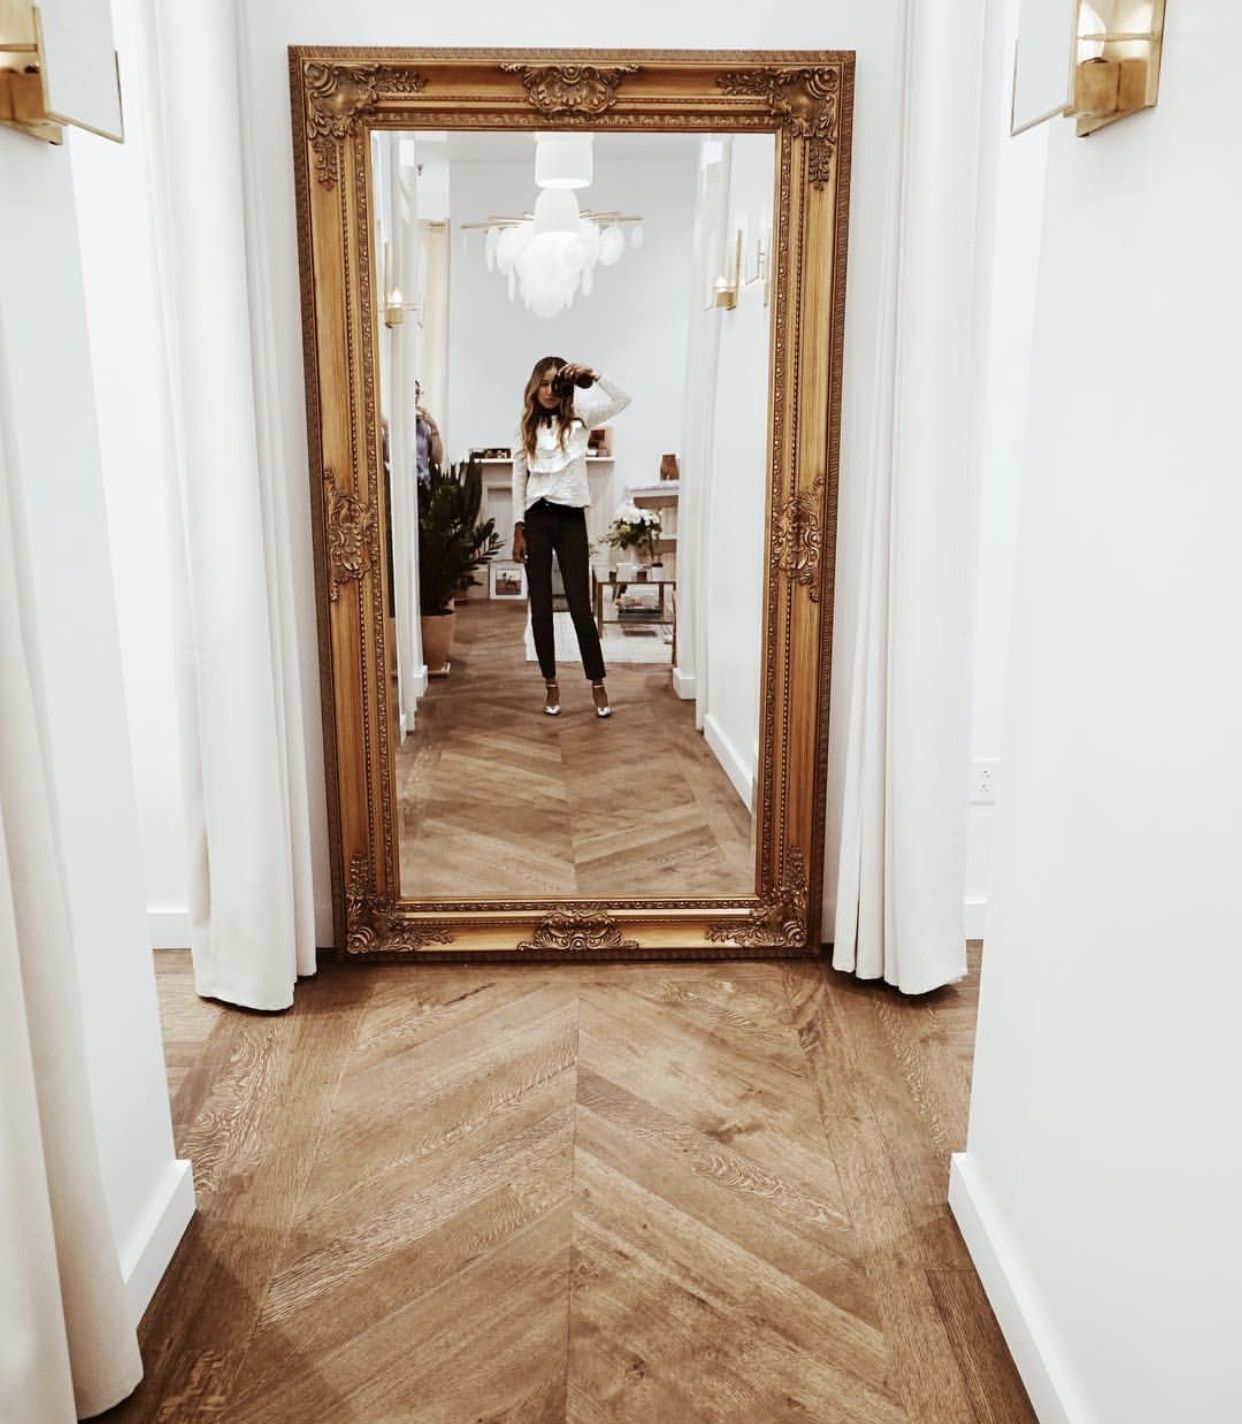 Flureinrichtung Flooring And Mirror Ideas For The House In 2019 Home Decor